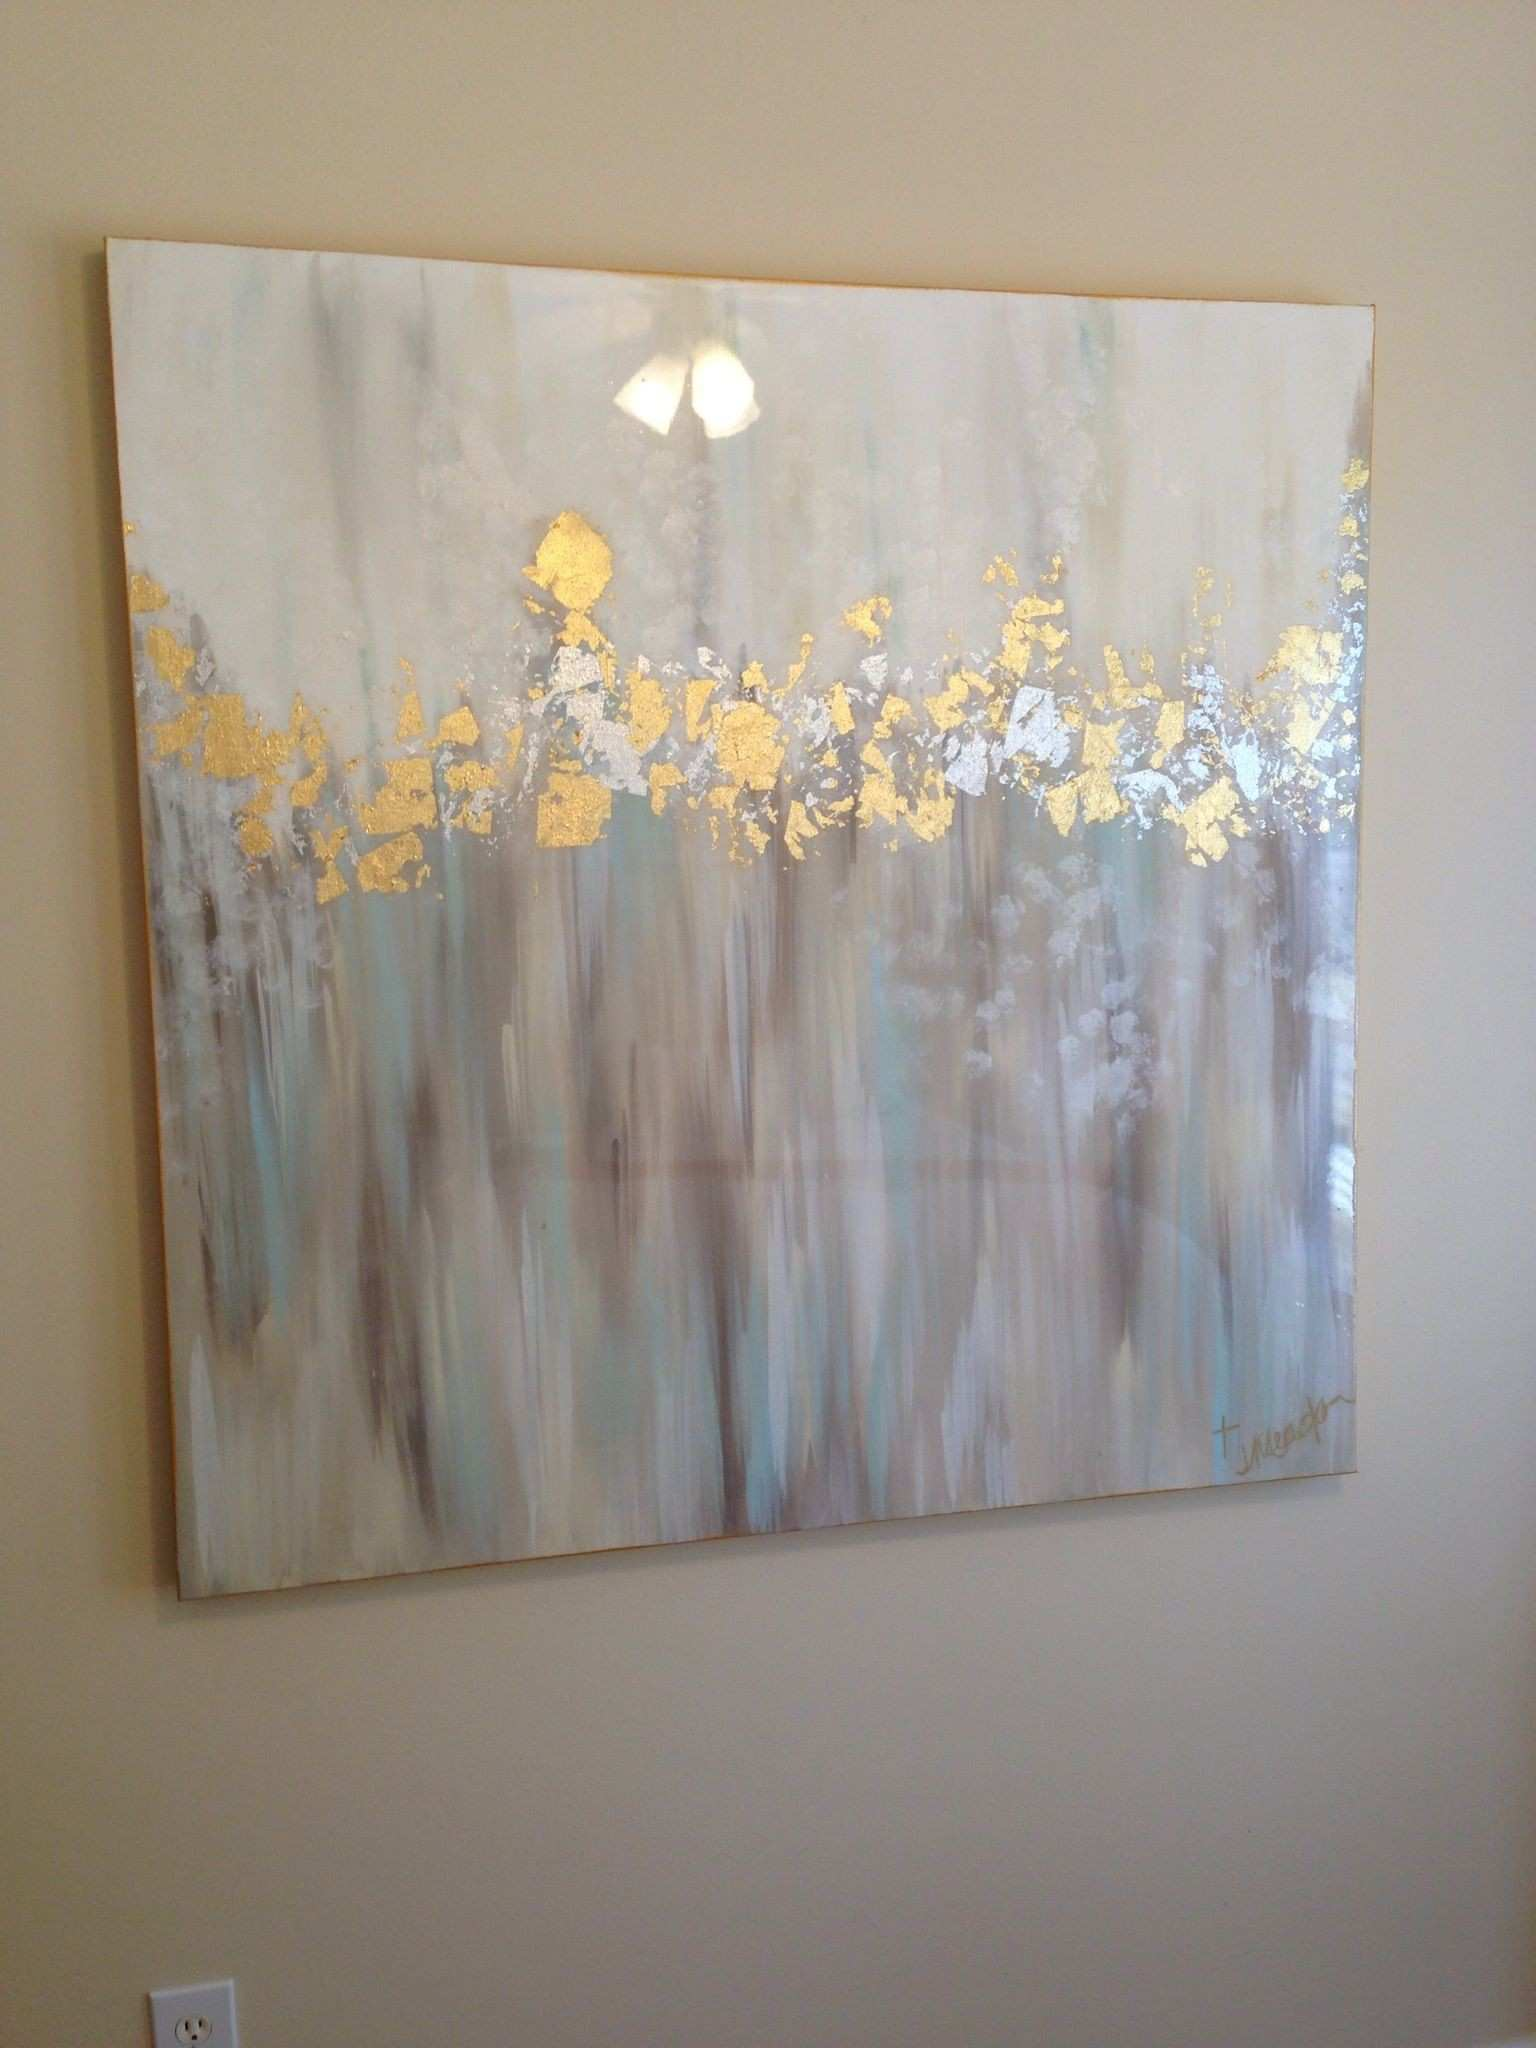 White gray blue gold and silver abstract art 48x48 by Jenn Meador